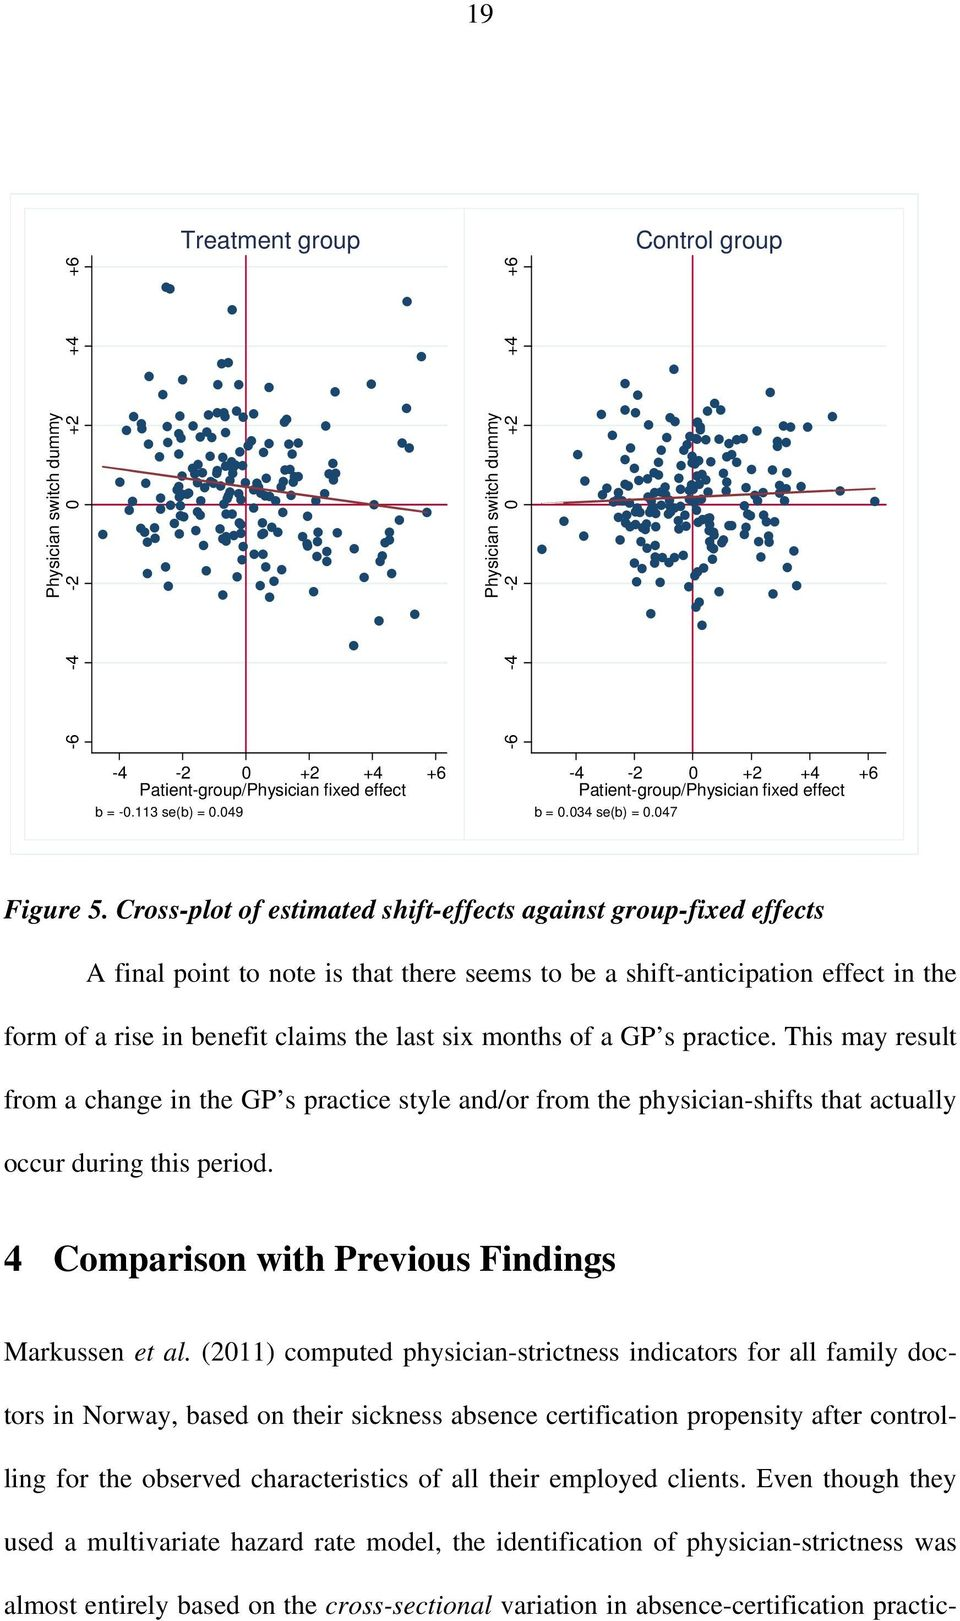 Cross-plot of estimated shift-effects against group-fixed effects A final point to note is that there seems to be a shift-anticipation effect in the form of a rise in benefit claims the last six